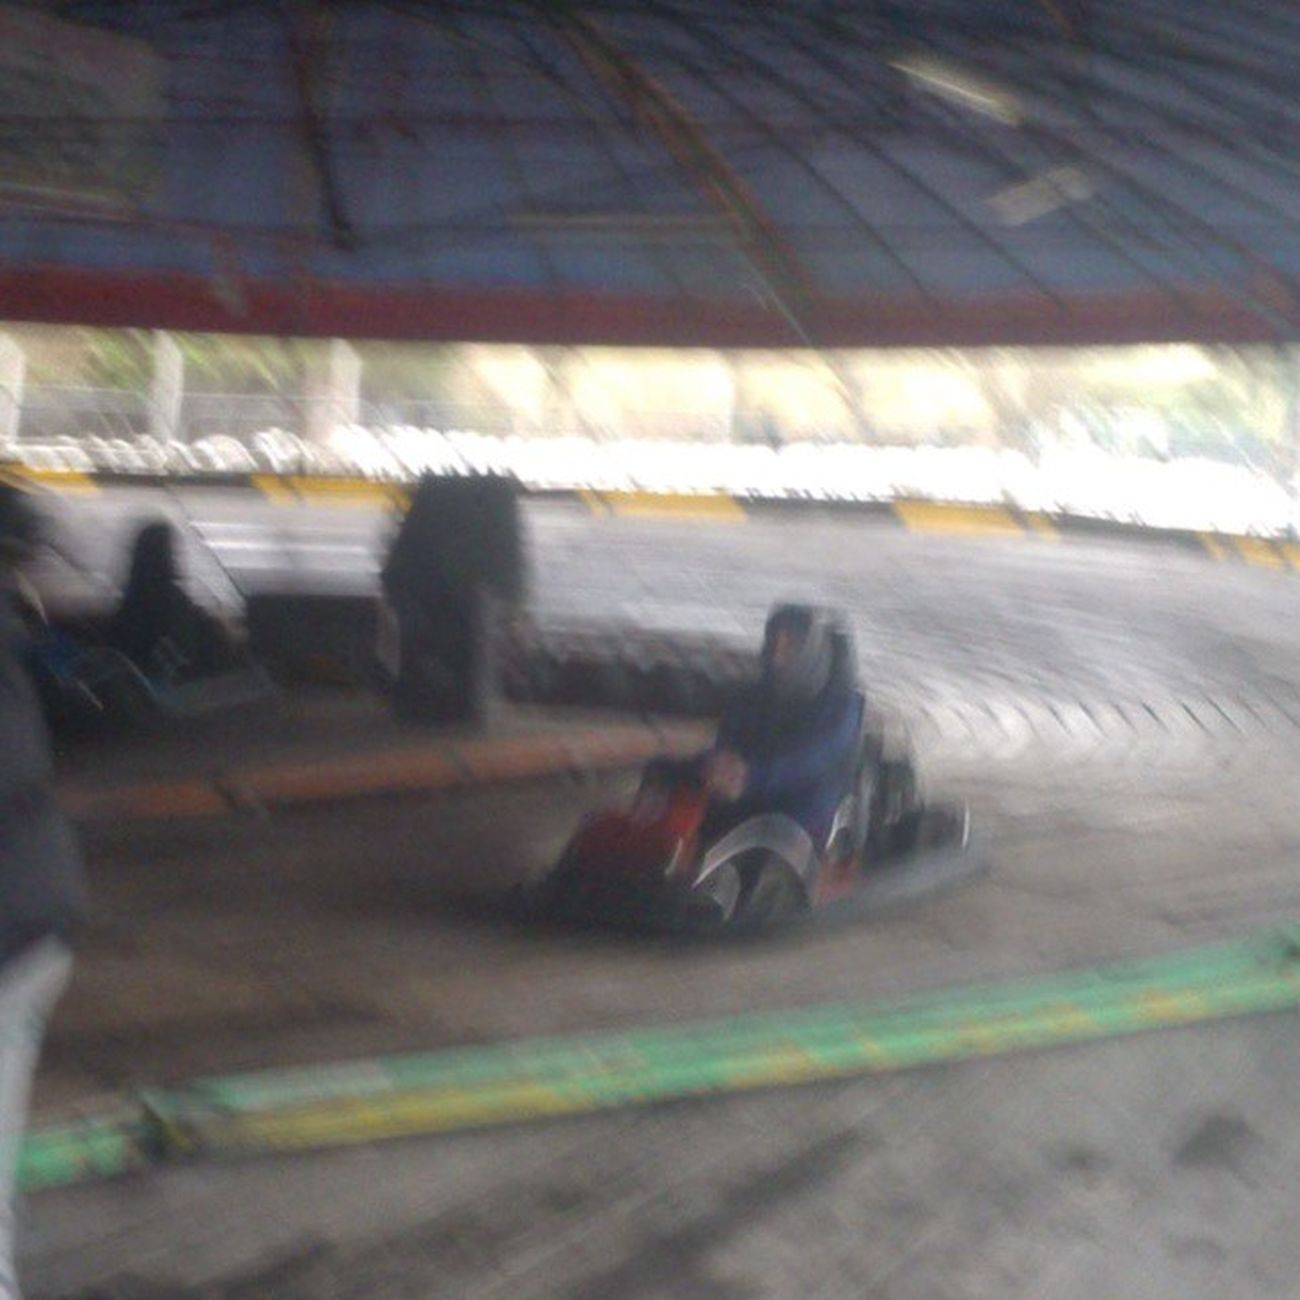 Gokart Race Racer Me Happy Minicircuit Velocity Epicday Monday this i am